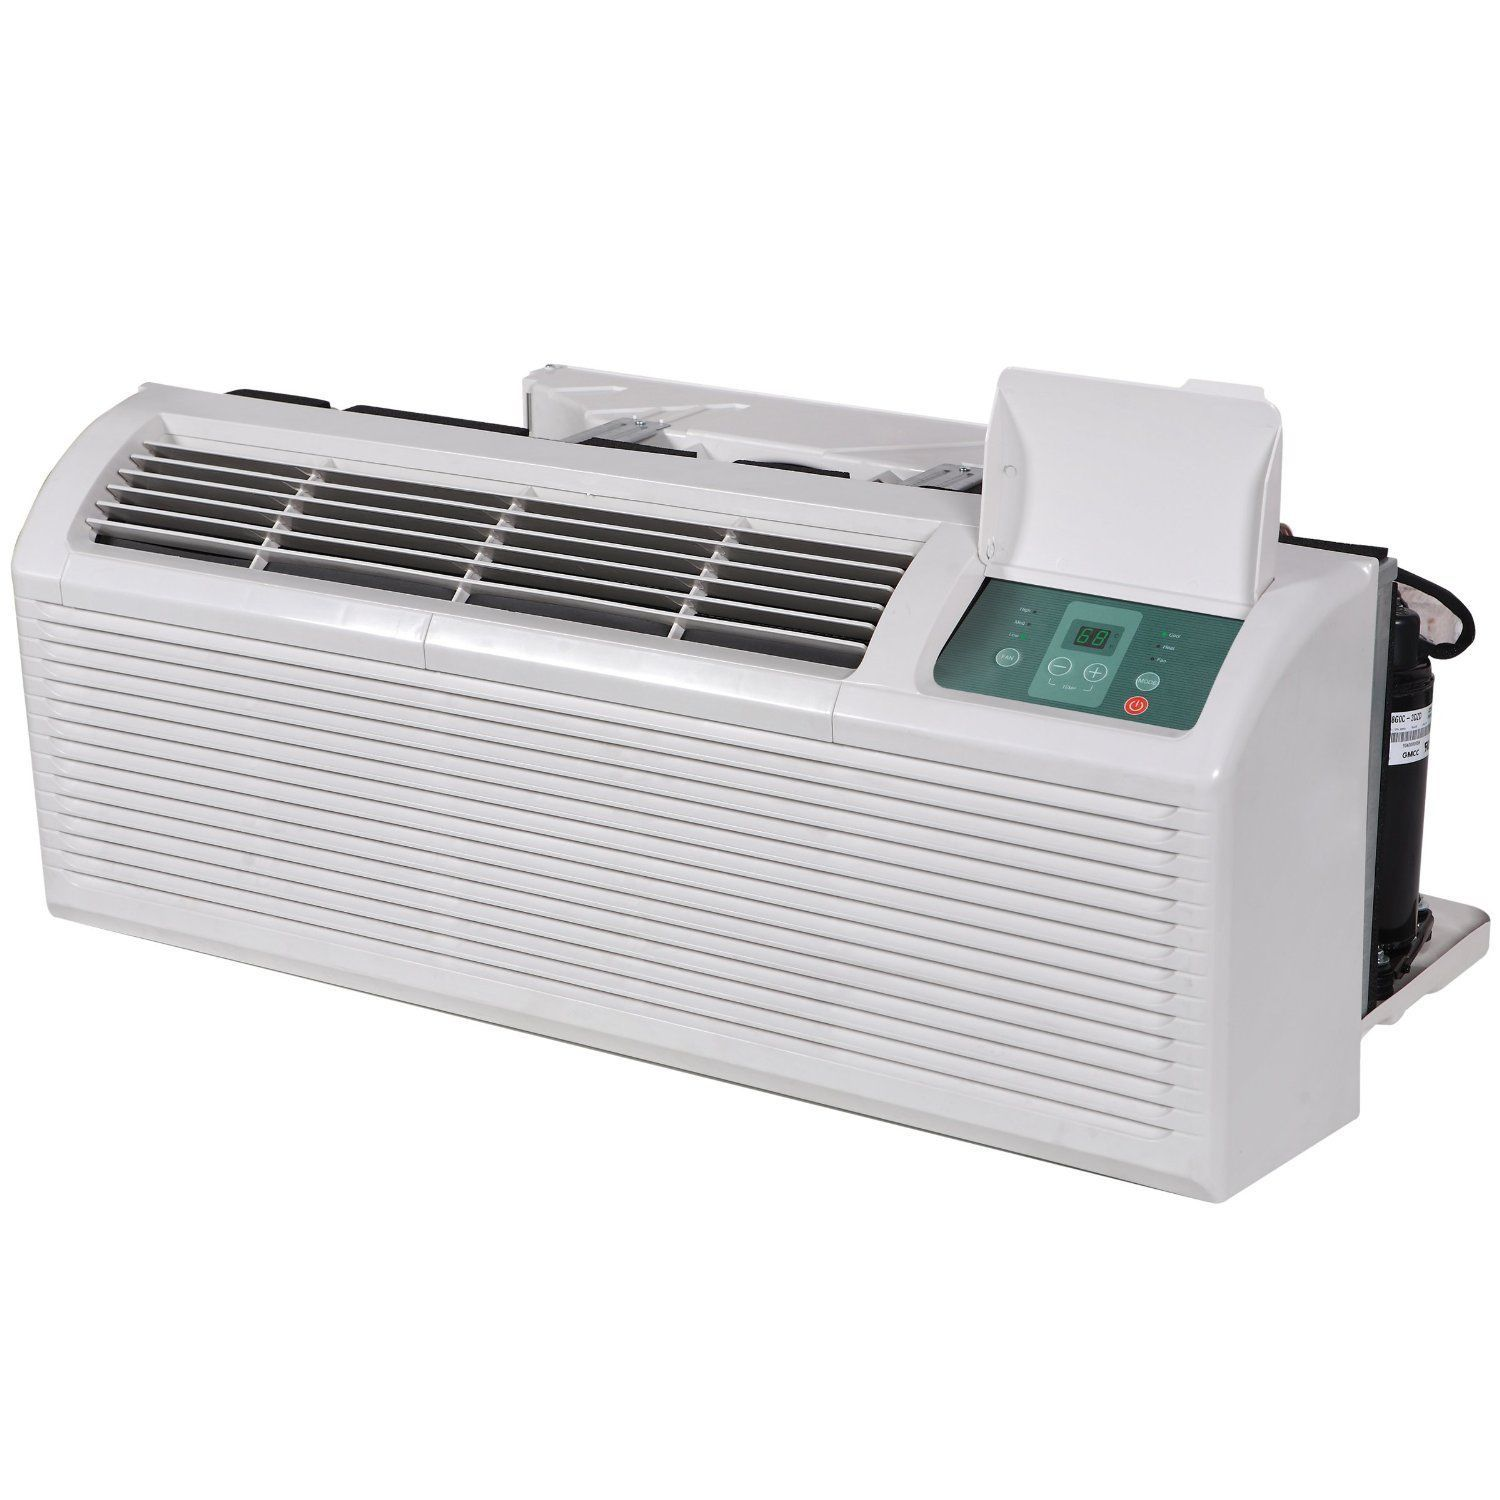 Perfect Aire 1ptc07a 3 5 7300 7100 Btu Ptac Eer 11 9 Free Shipping 20 Amp Plug Air Conditioner Air Conditioning Maintenance Air Conditioning Installation